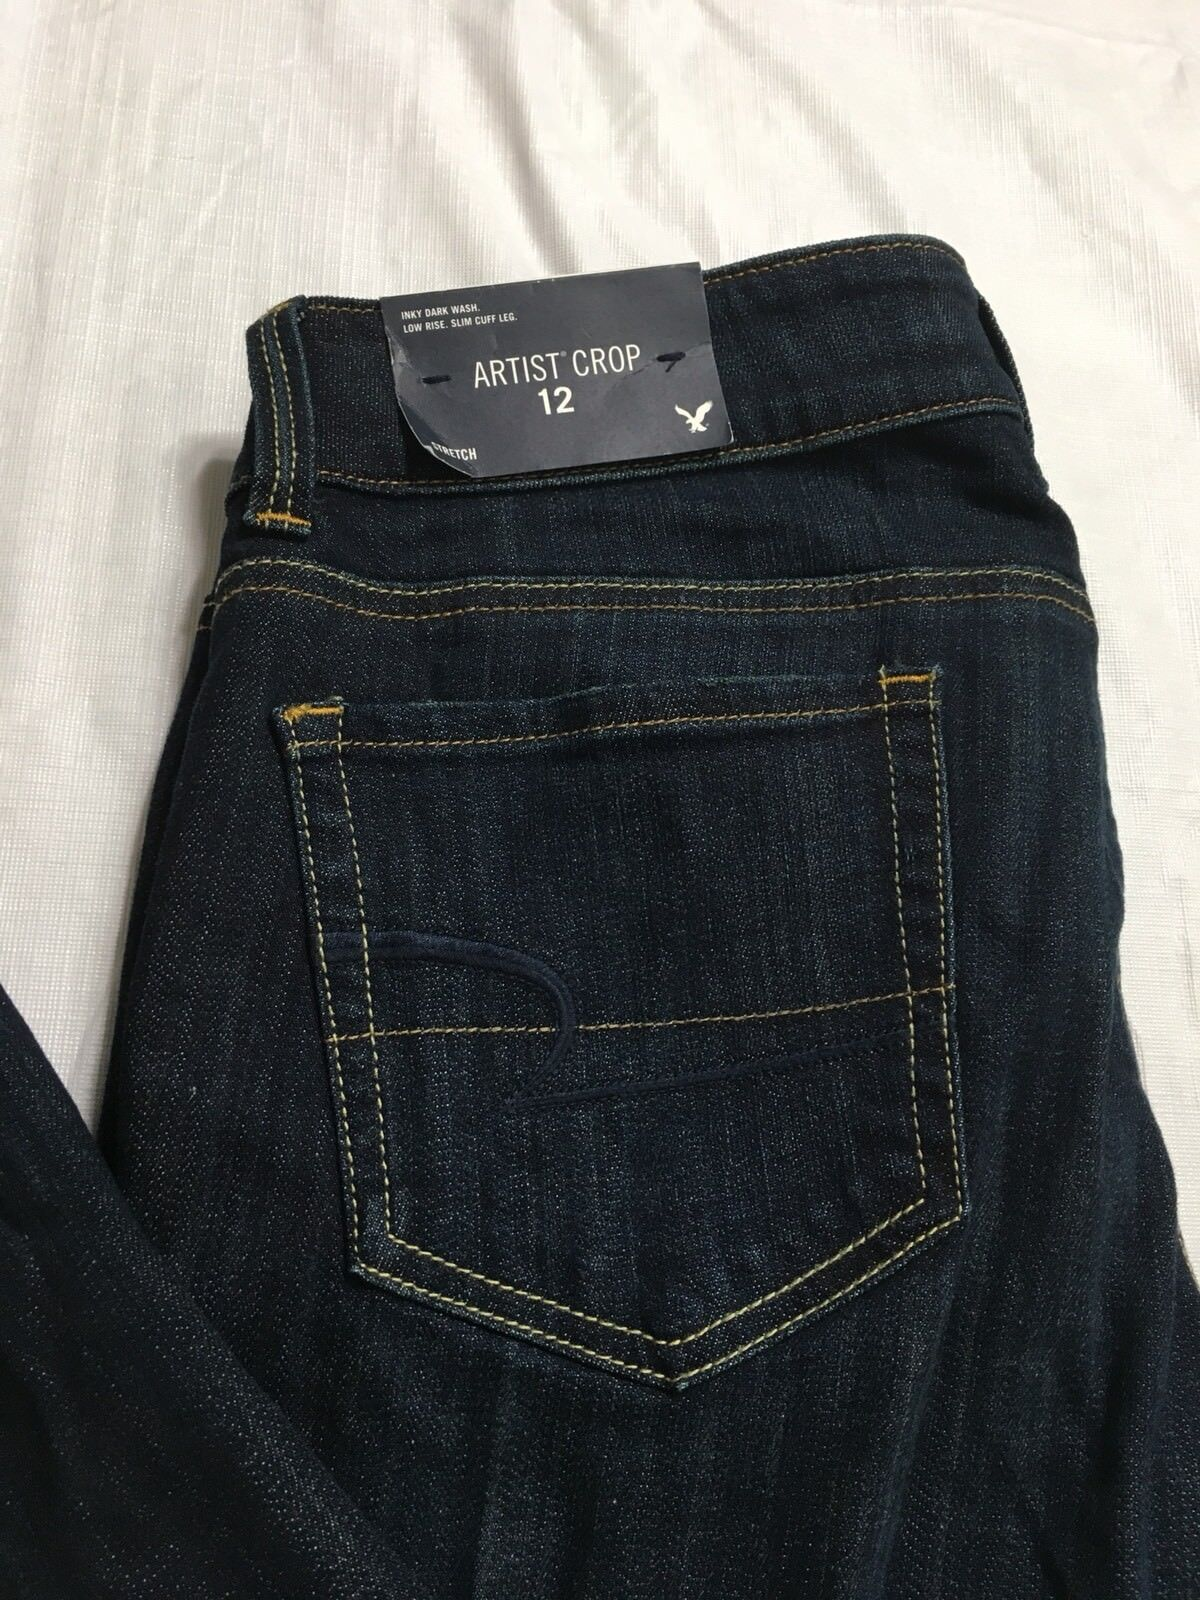 American Eagle AEO Artist Crop Jeans 12 Reg Low Rise Stretch Slim Cuff Straight